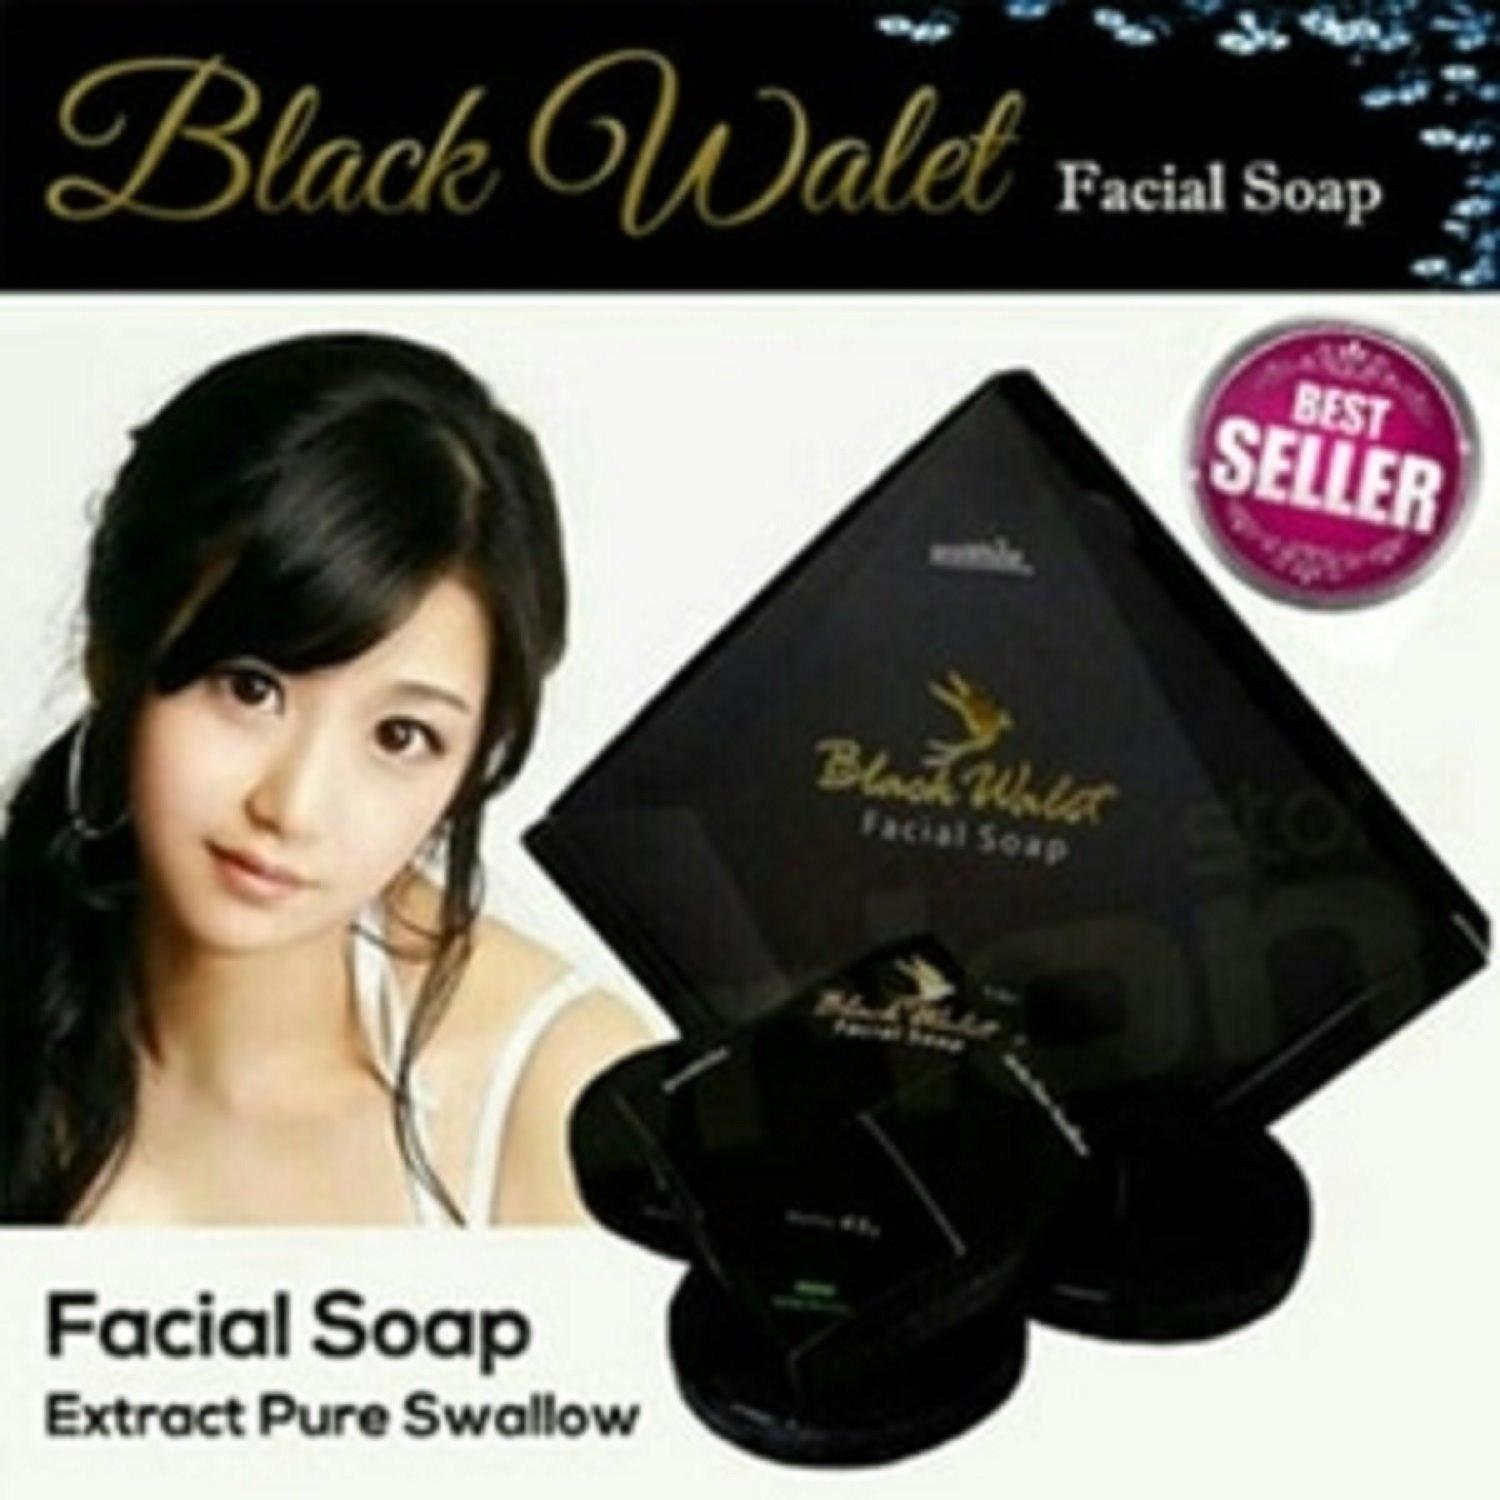 Kehebatan Neo Walet Facial Soap Dan Harga Update Teknologi Bpom Body Jelly Sabun Pure Black Ori 1set 3pcs